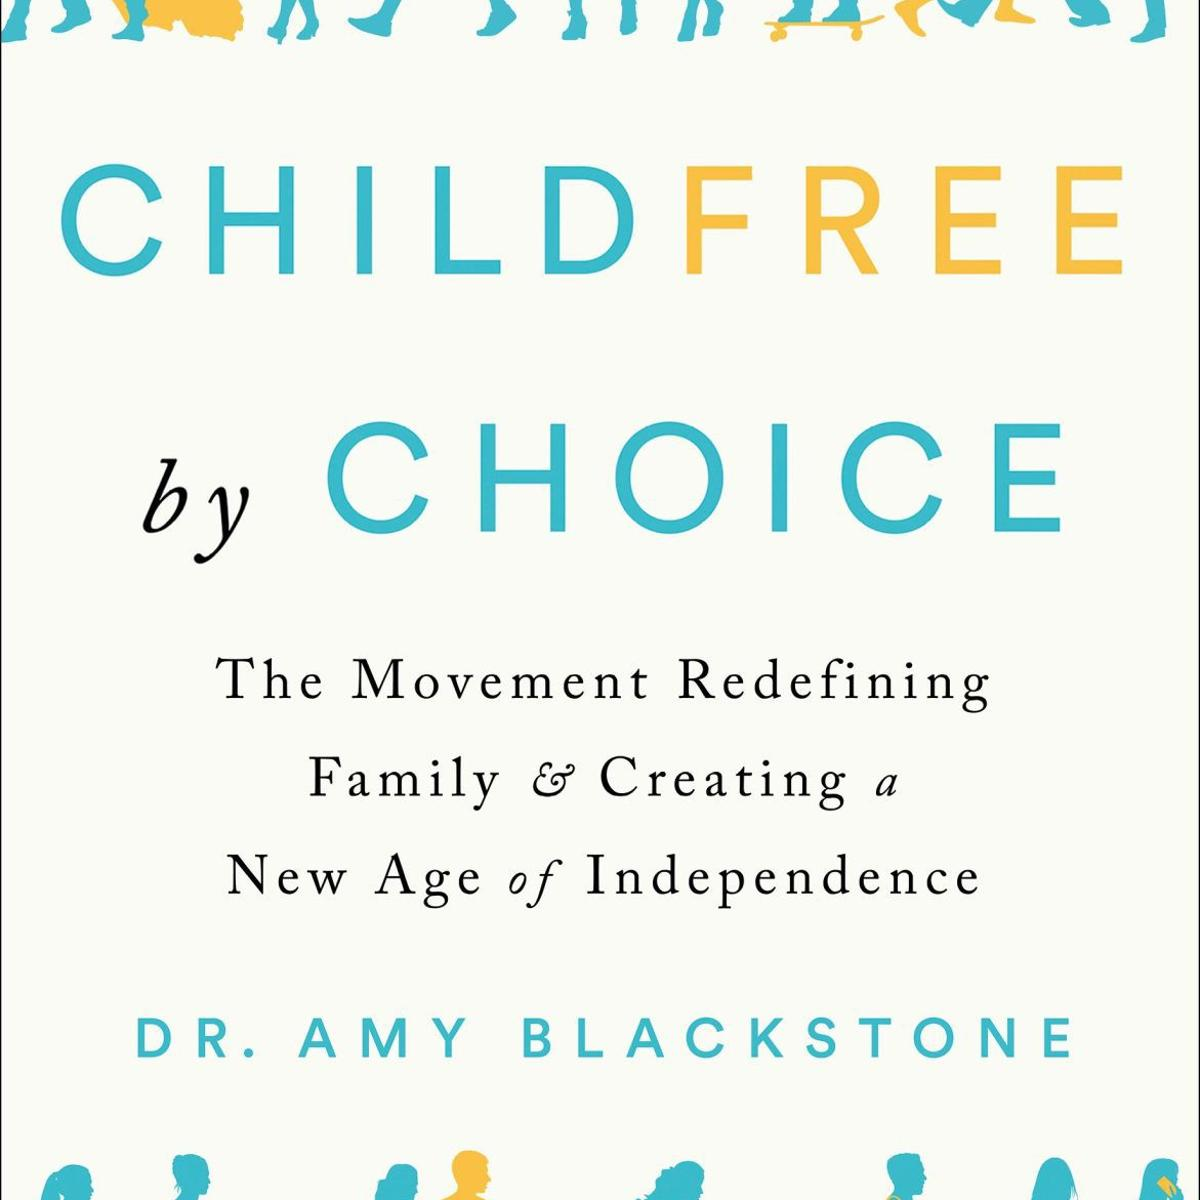 REVIEW: Controversial 'Childfree by Choice' should be bumped to top